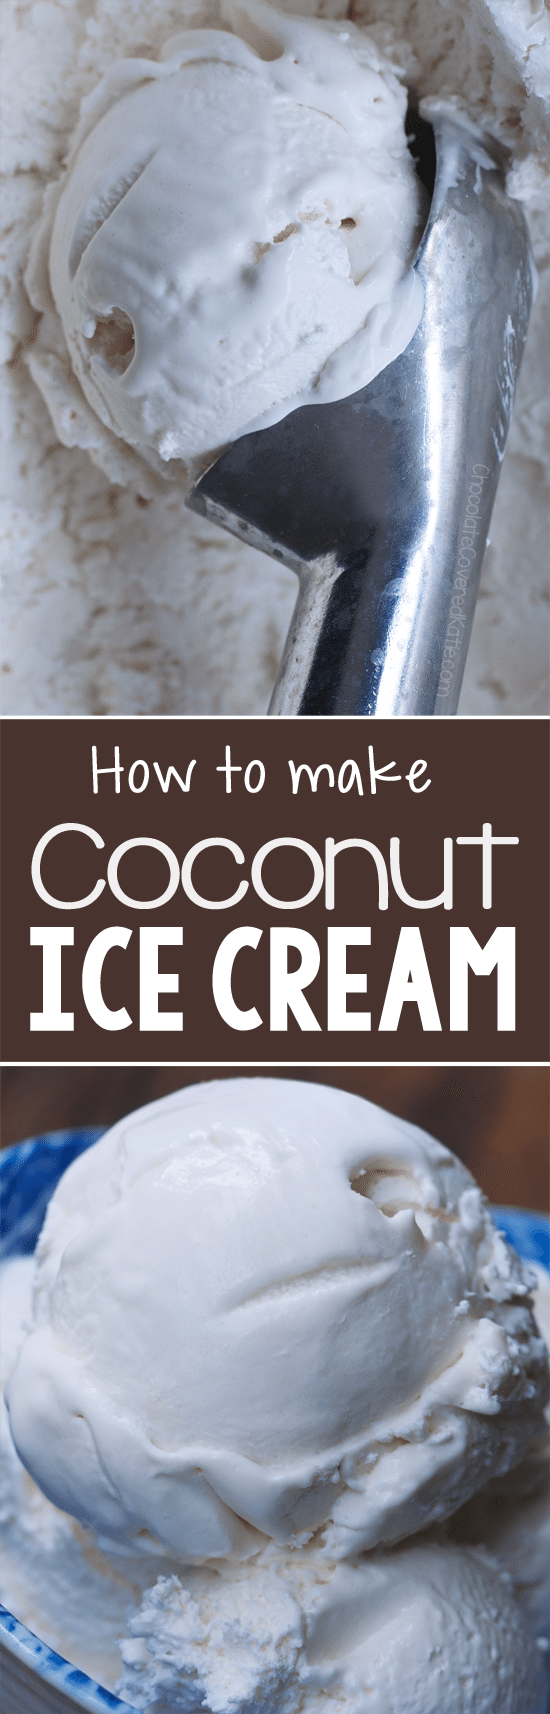 Creamy & dairy-free coconut ice cream you can make at home, no ice cream maker required!